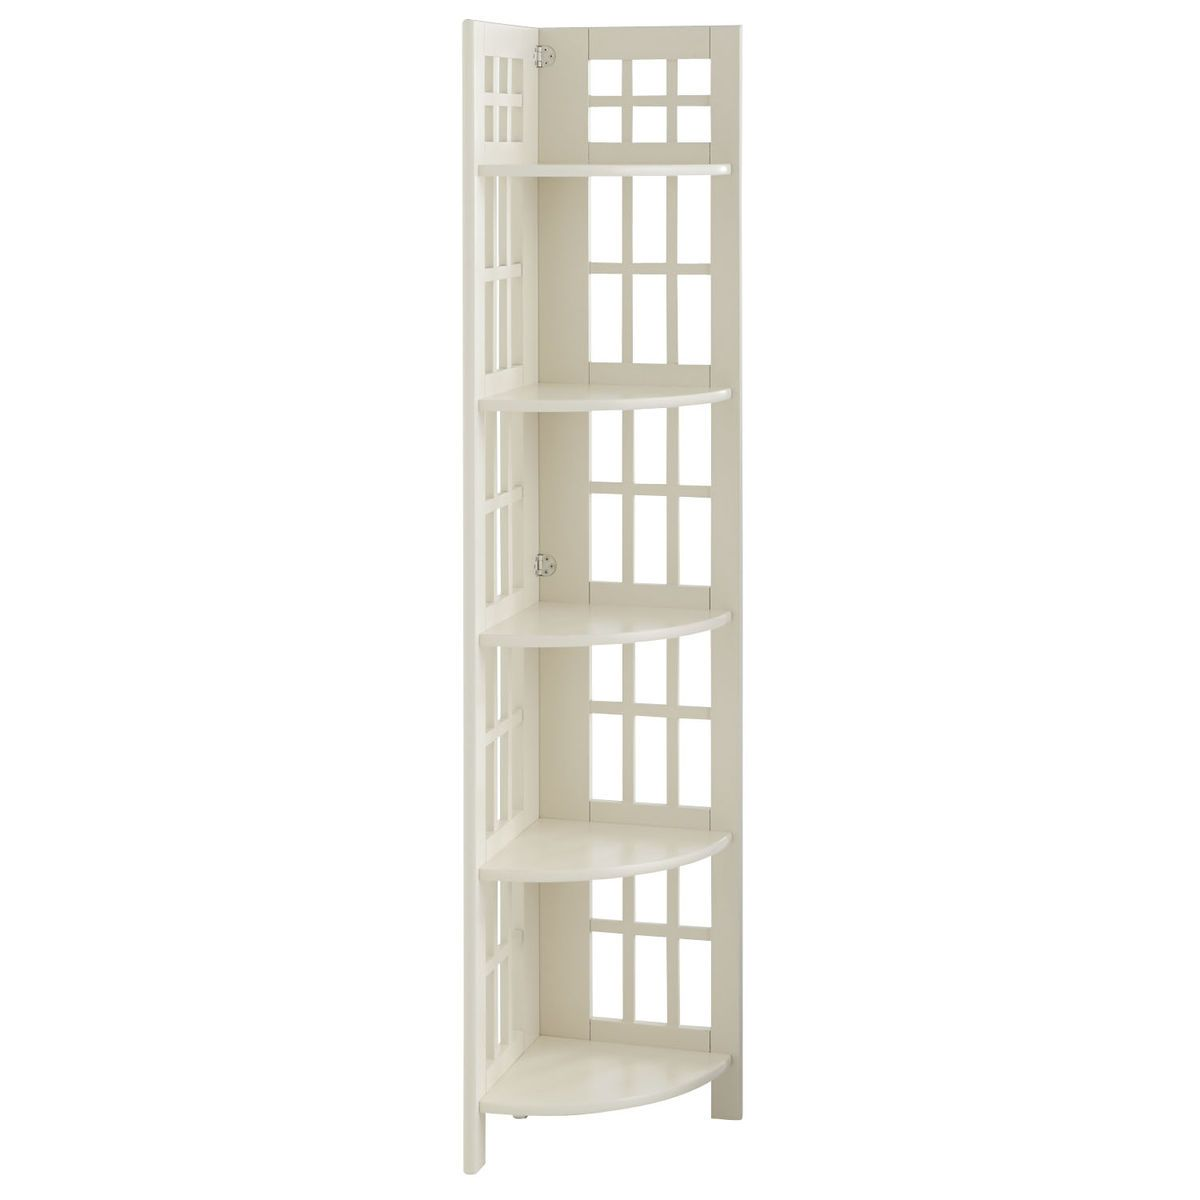 Fretted Tall Corner Shelf Antique White Tall Corner Shelf Corner Shelves Shelves